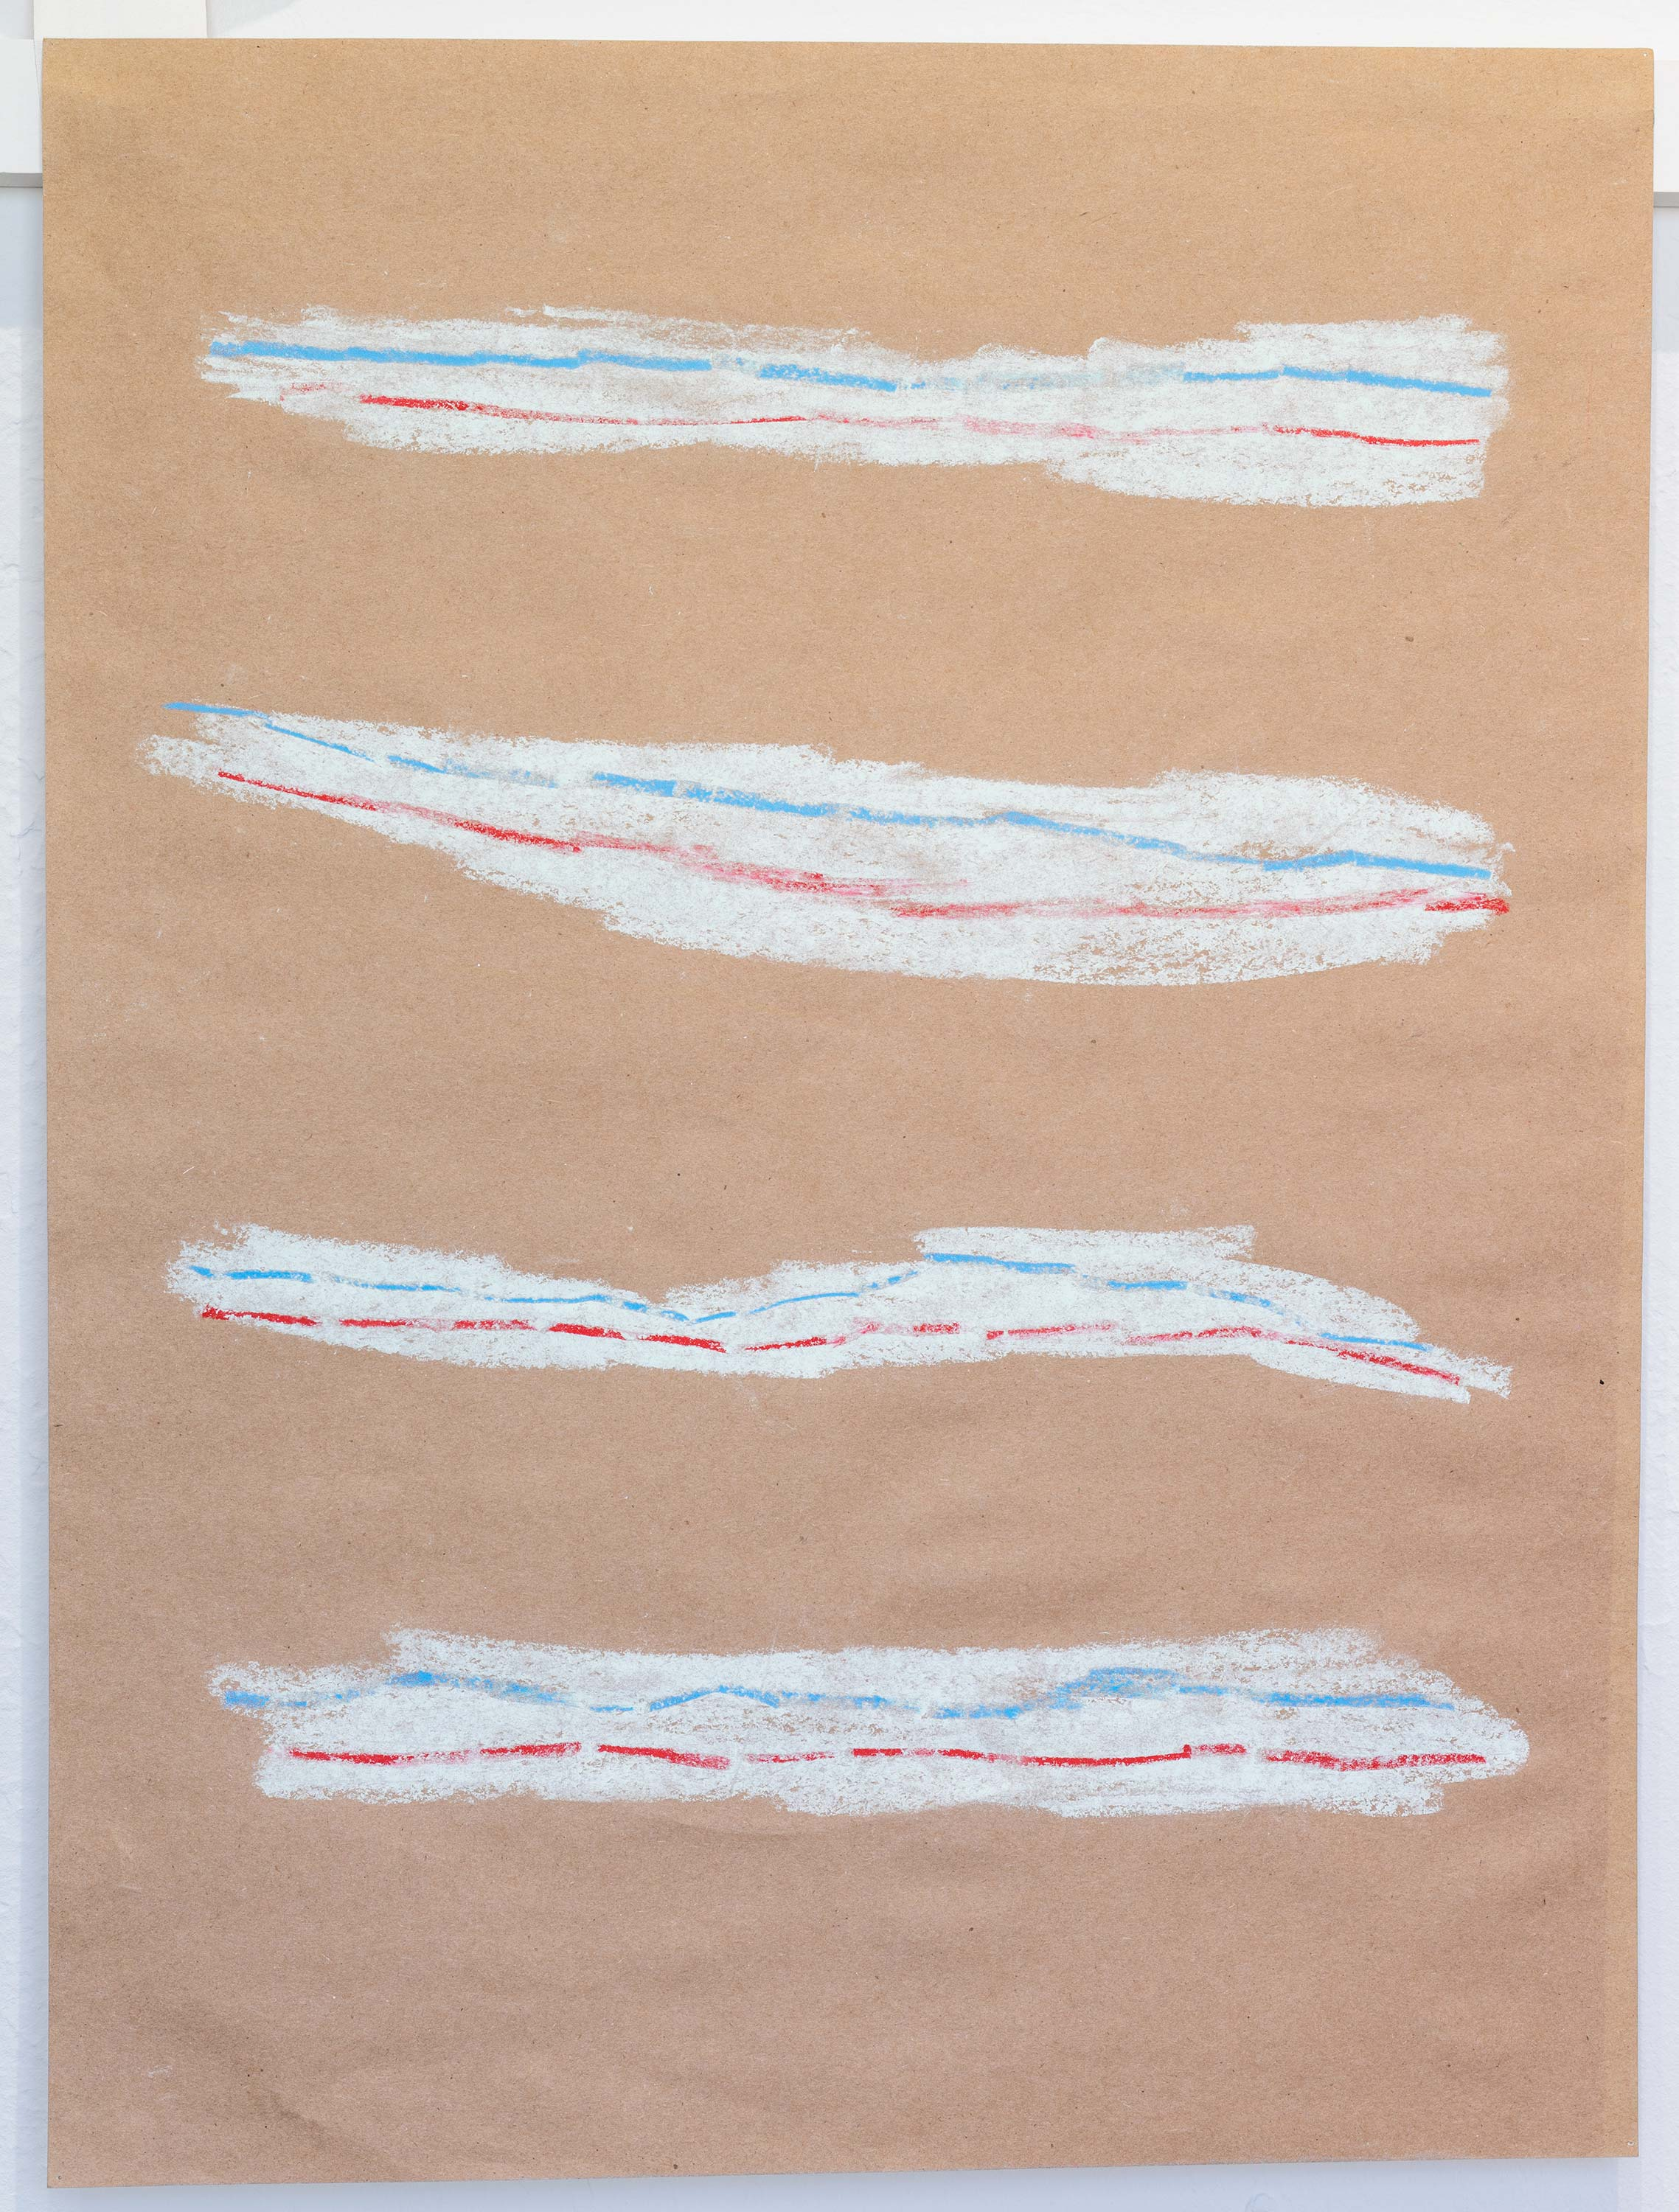 Al Freeman<br>Toothpaste 1<br>2015<br>Graphite and oil pastel on paper<br>18 x 24 inches (46 x 61 cm)